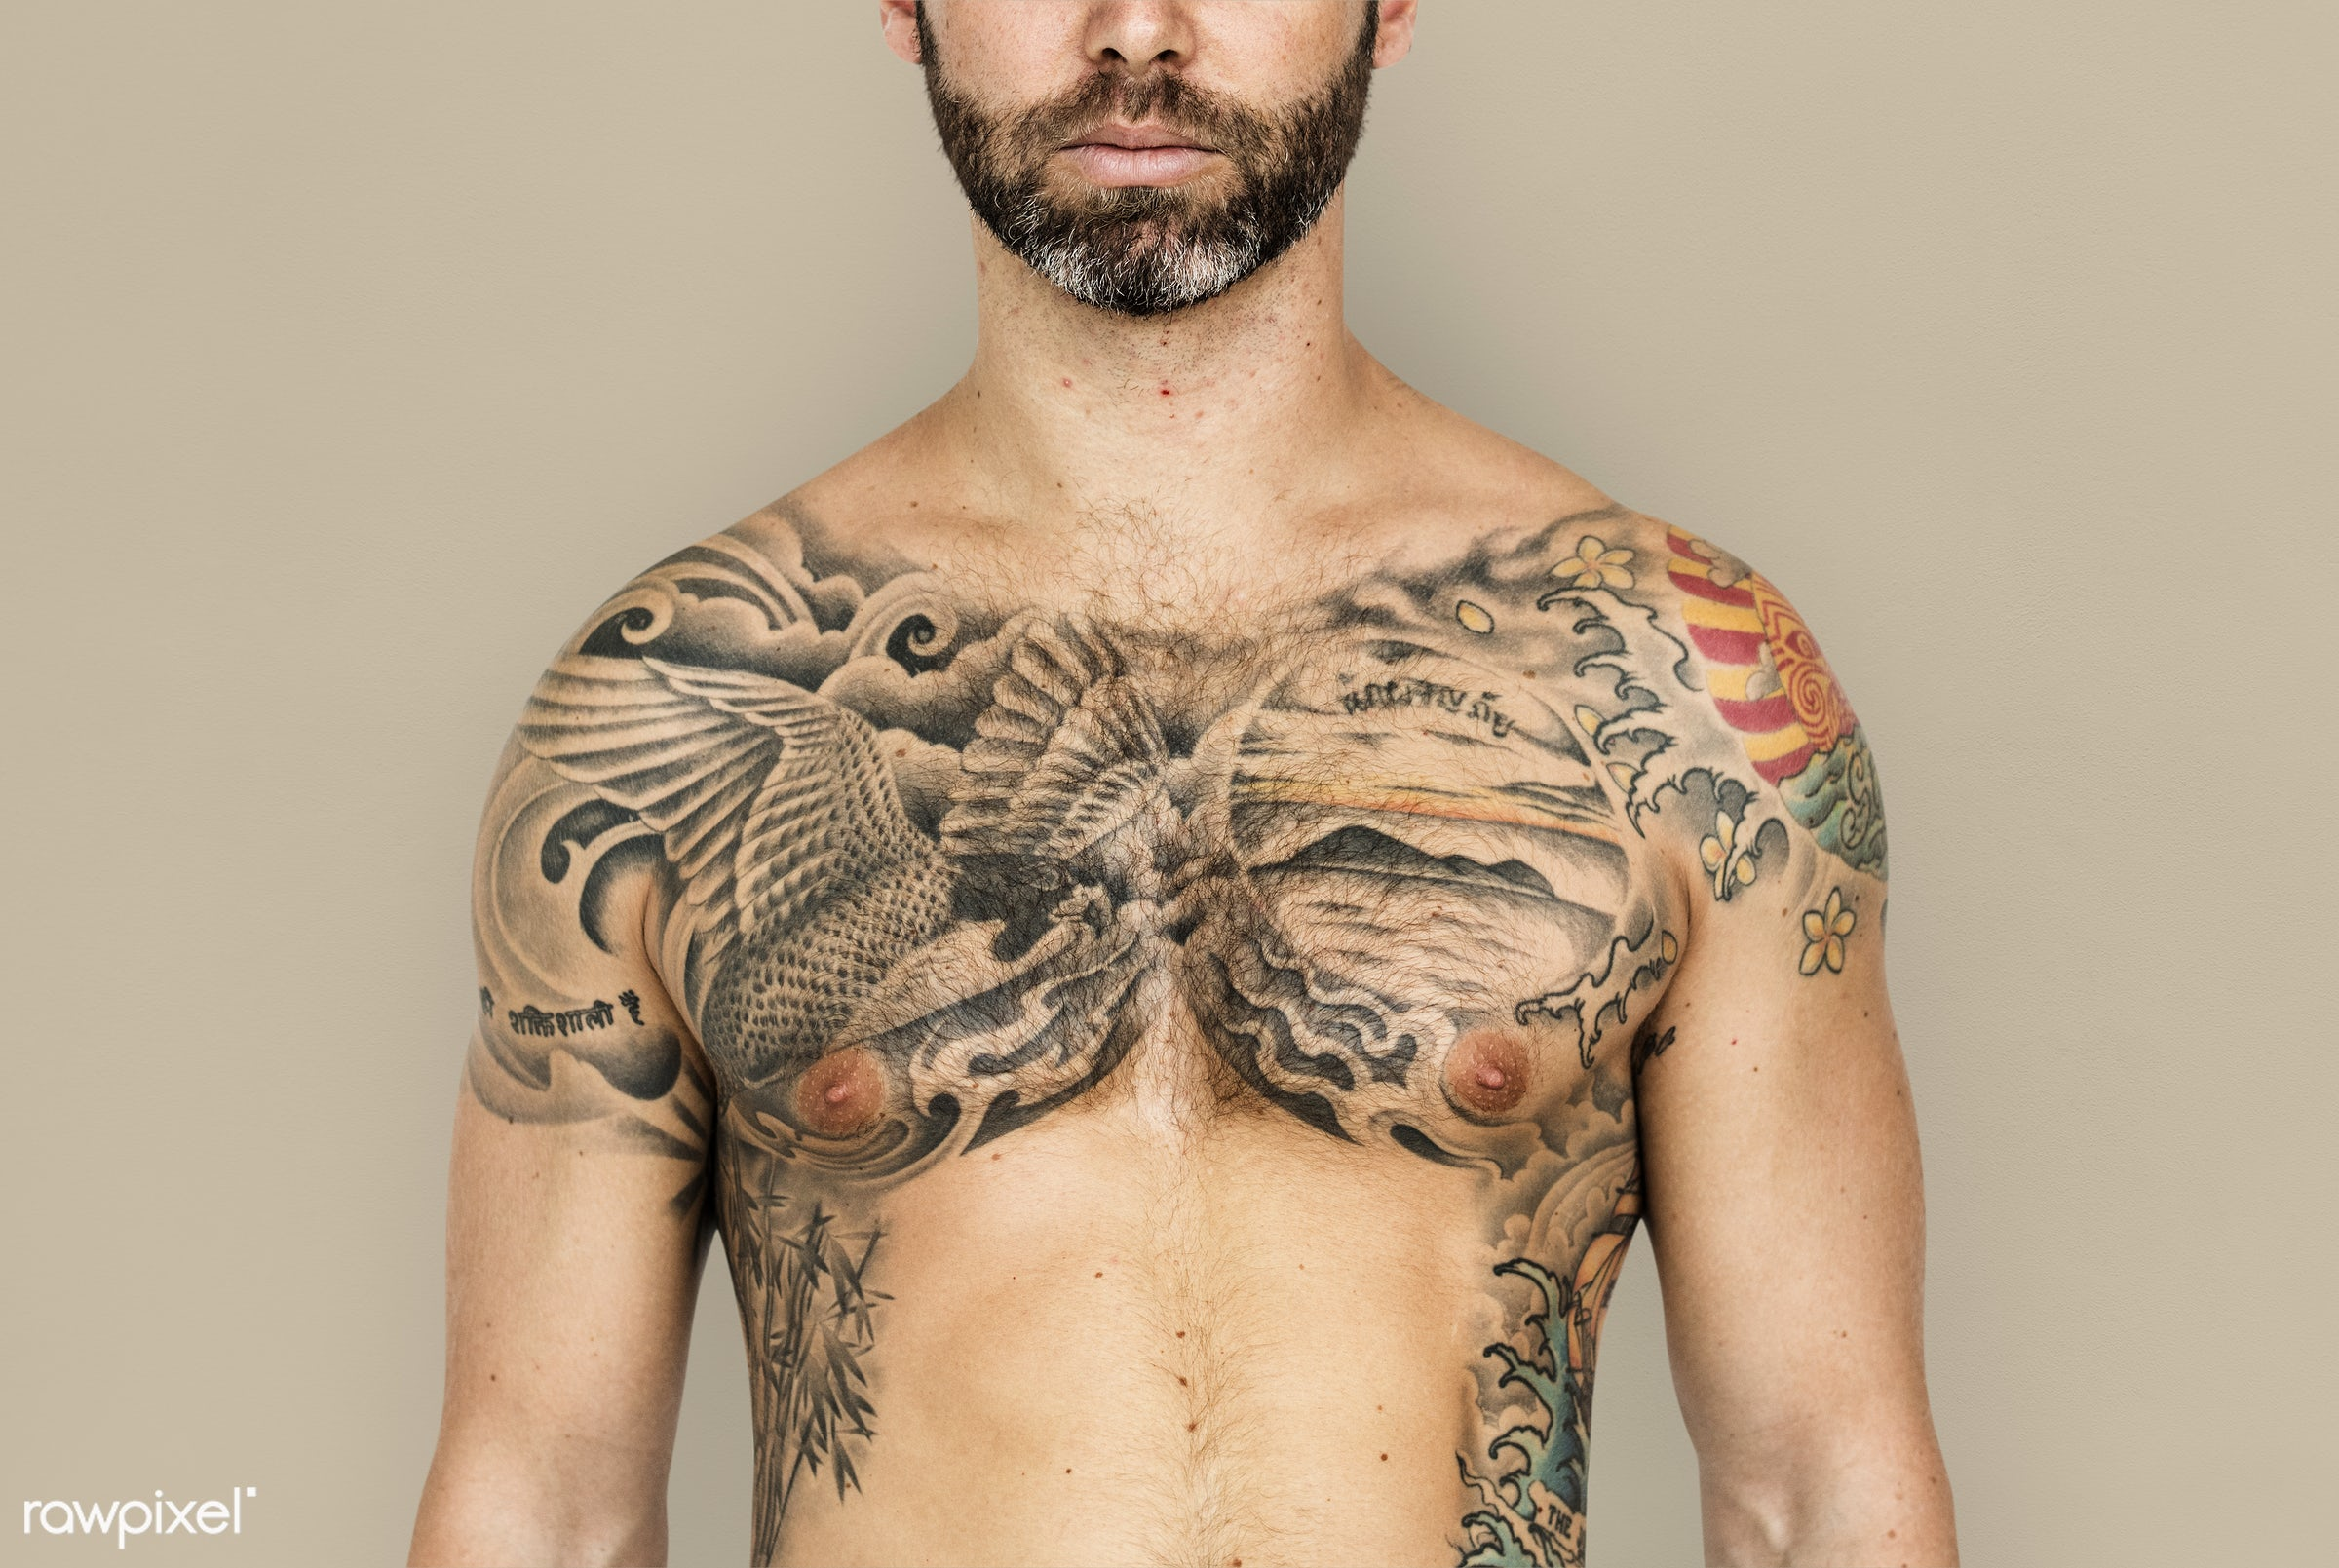 adult, background, bare chest, beard, chest, design, emotion, expression, facial, facial hair, fit, isolated, male, man,...